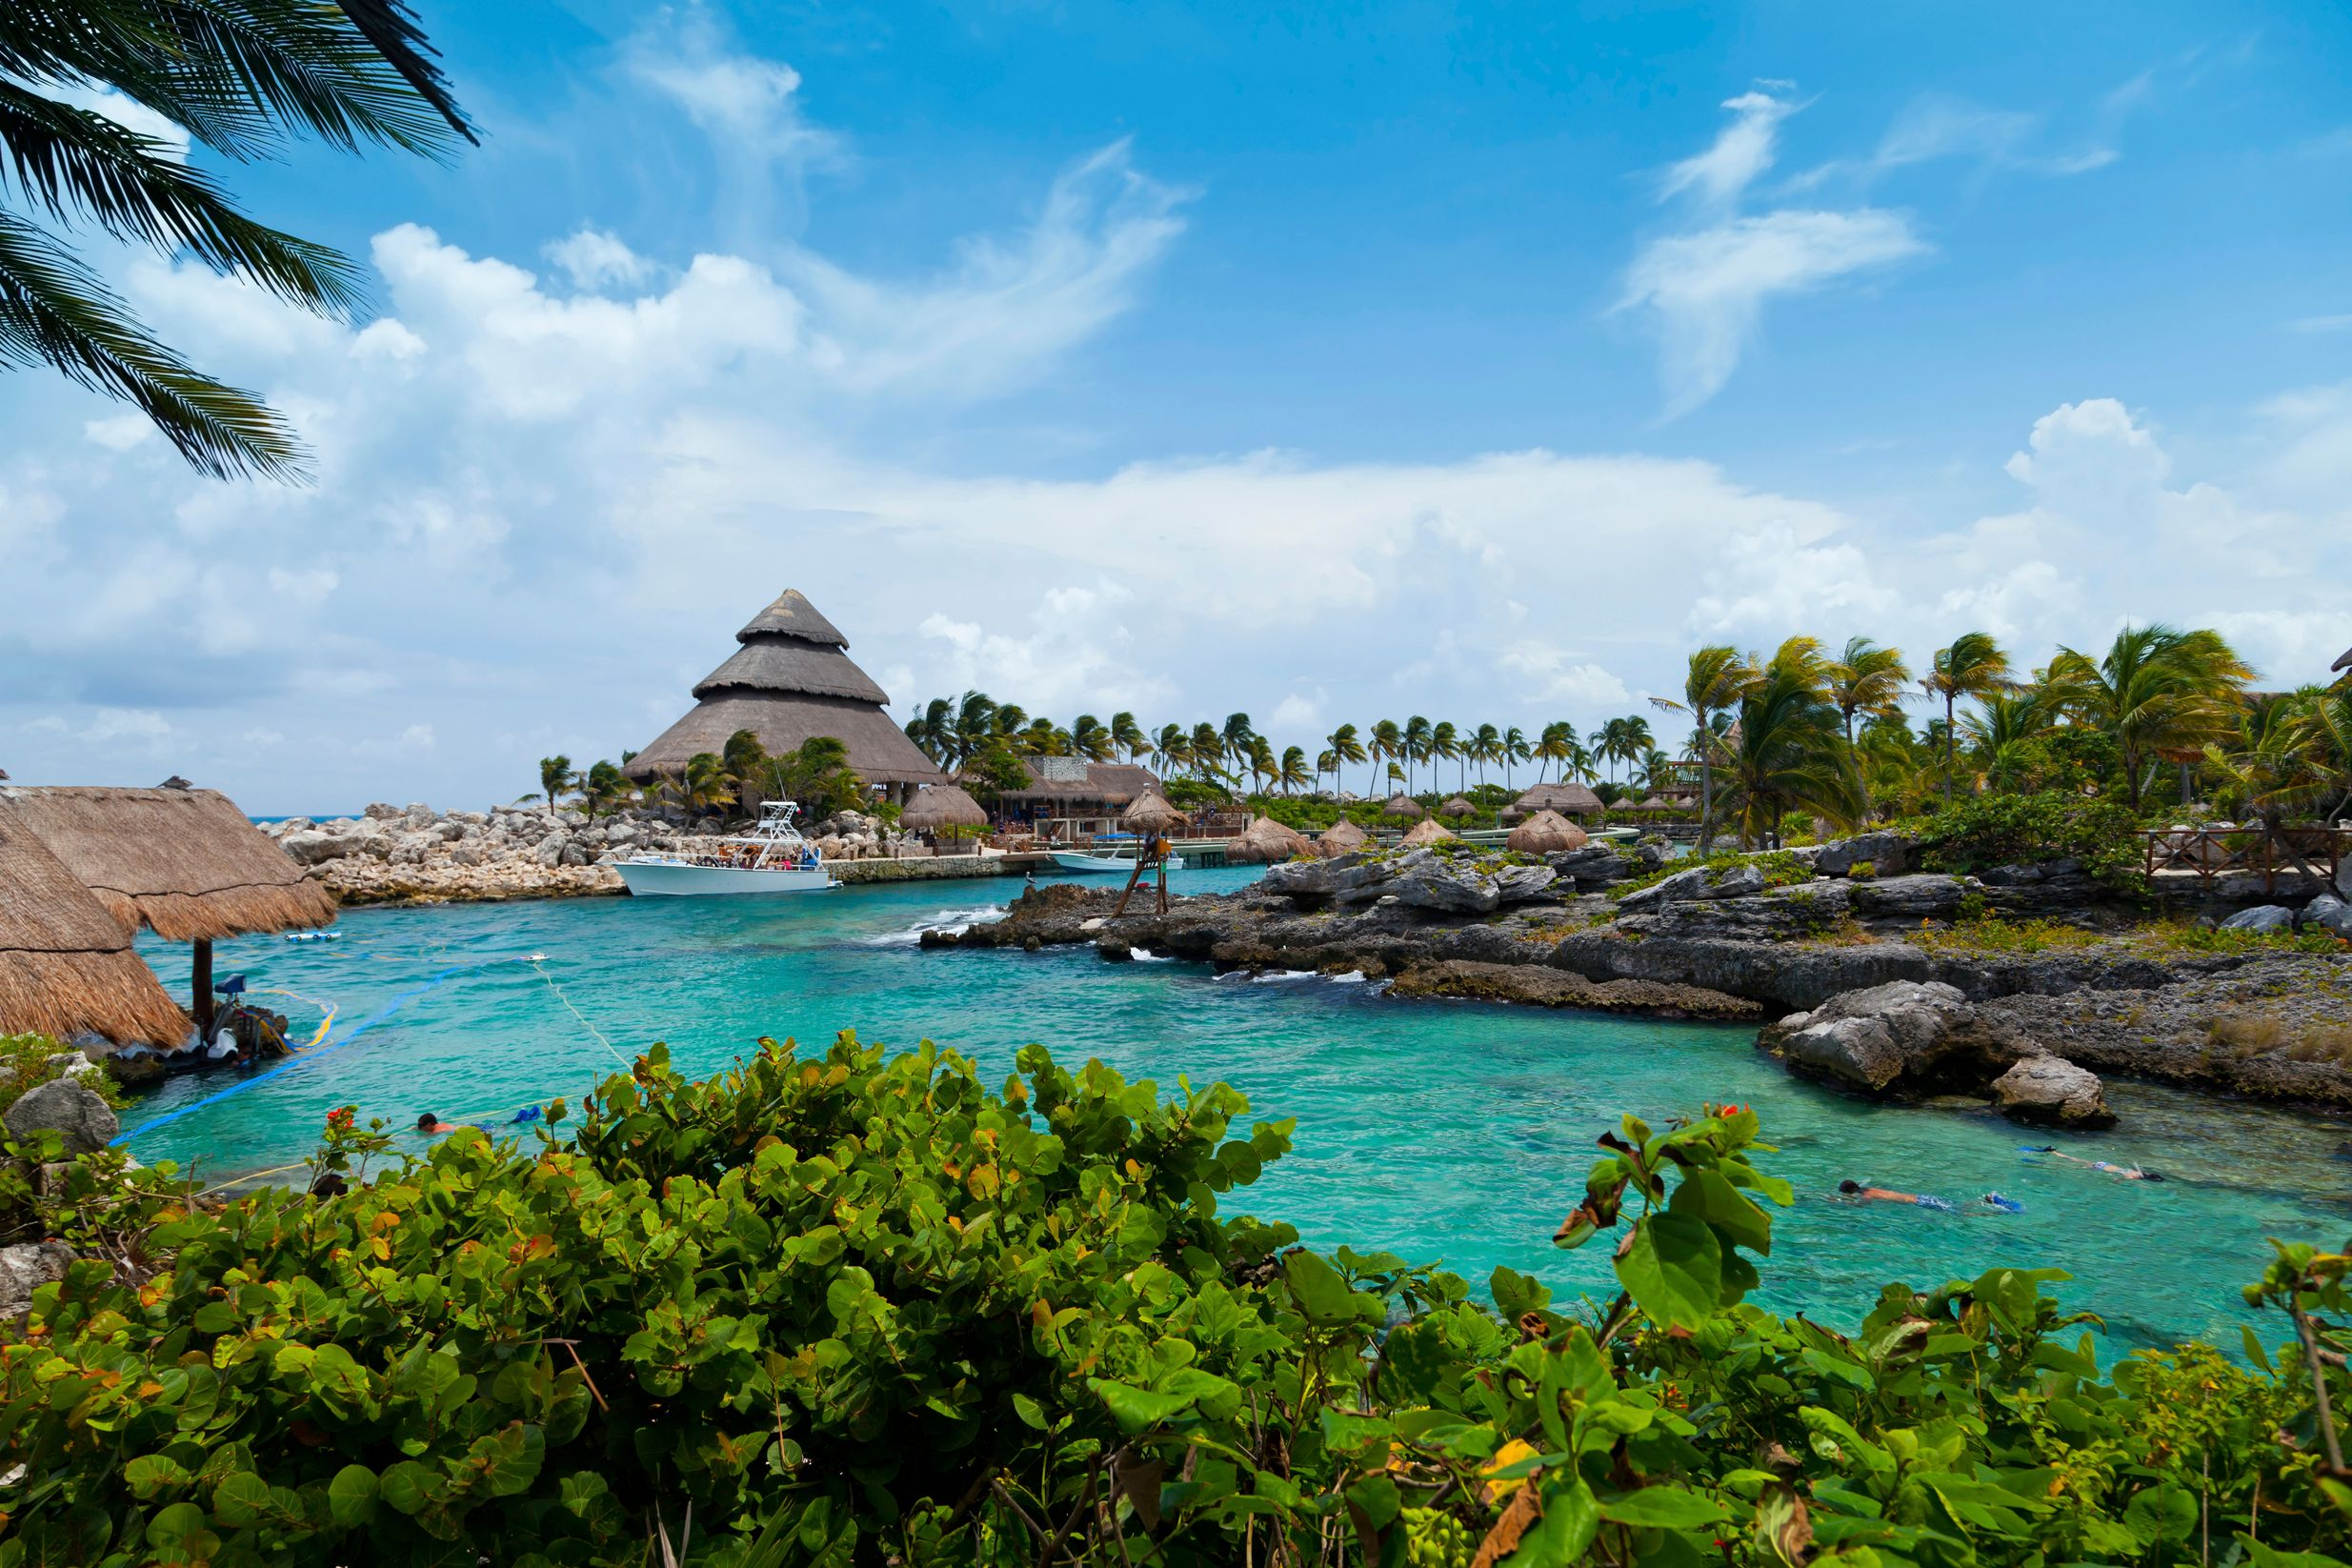 Flight deals to exotic destinations: Cancun